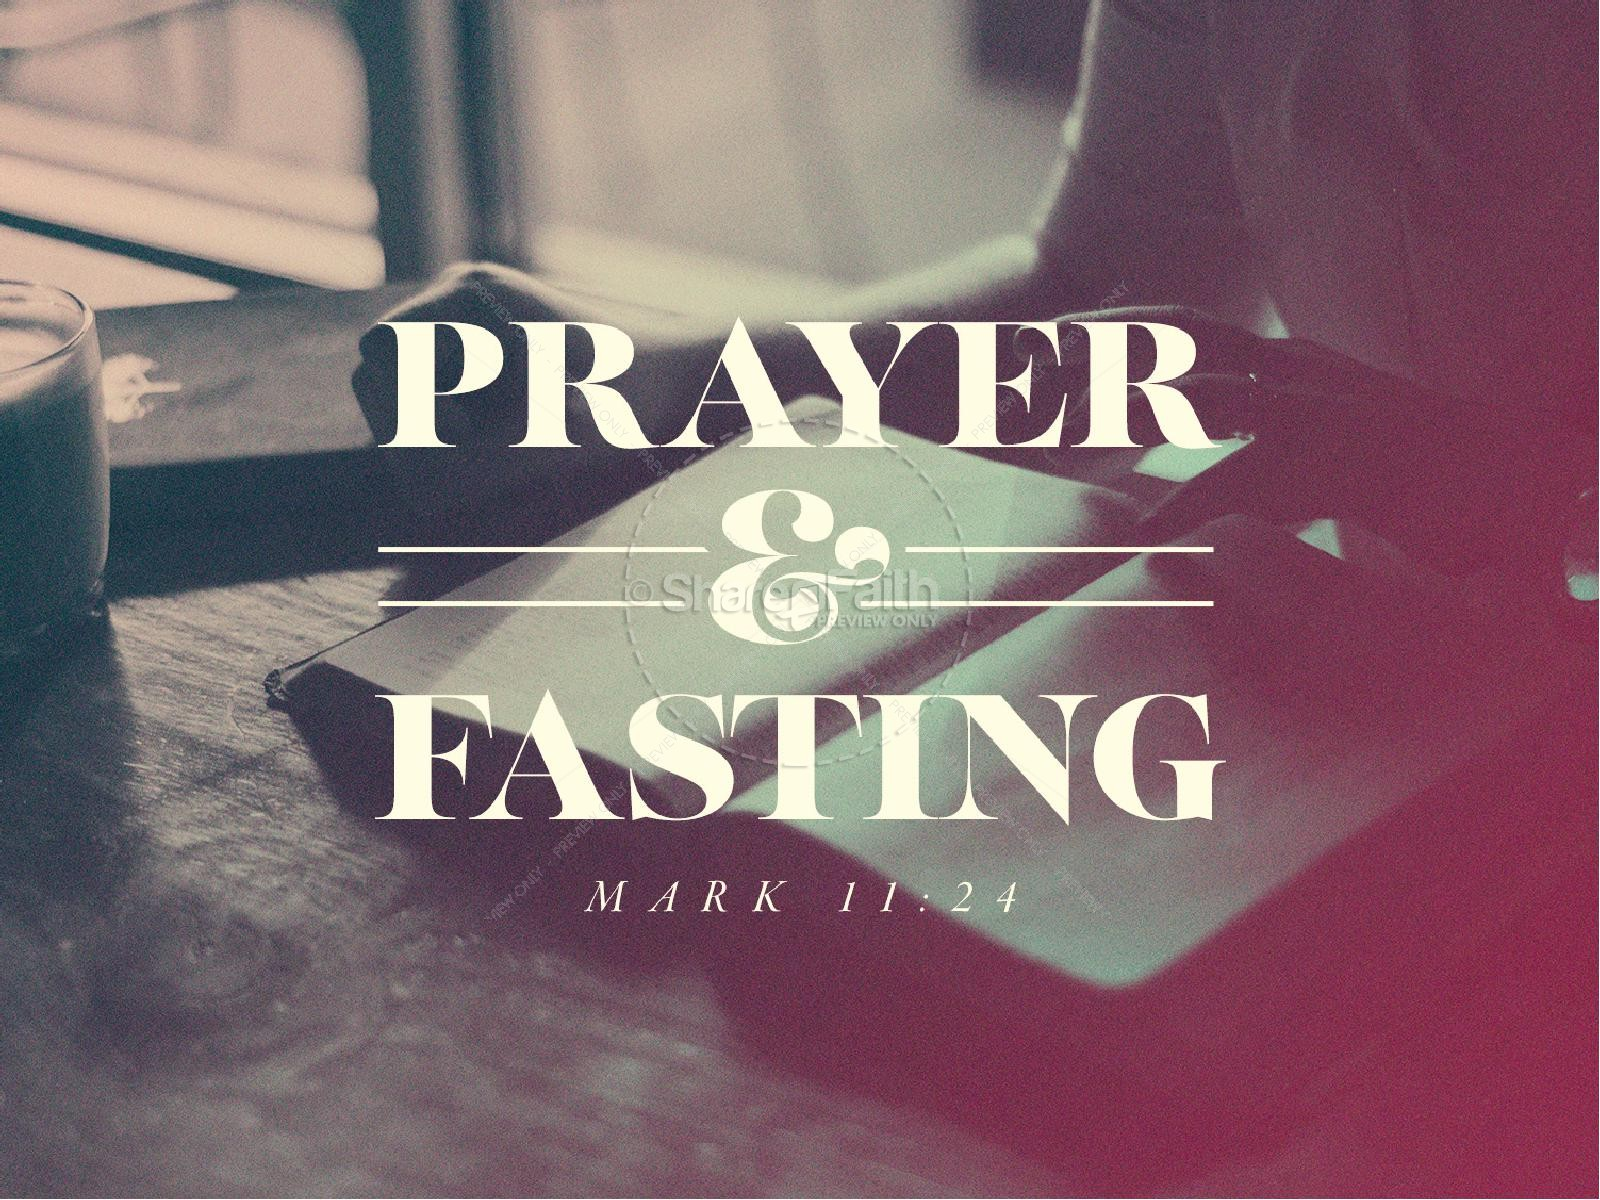 Prayer And Fasting Sermon PowerPoint Template.